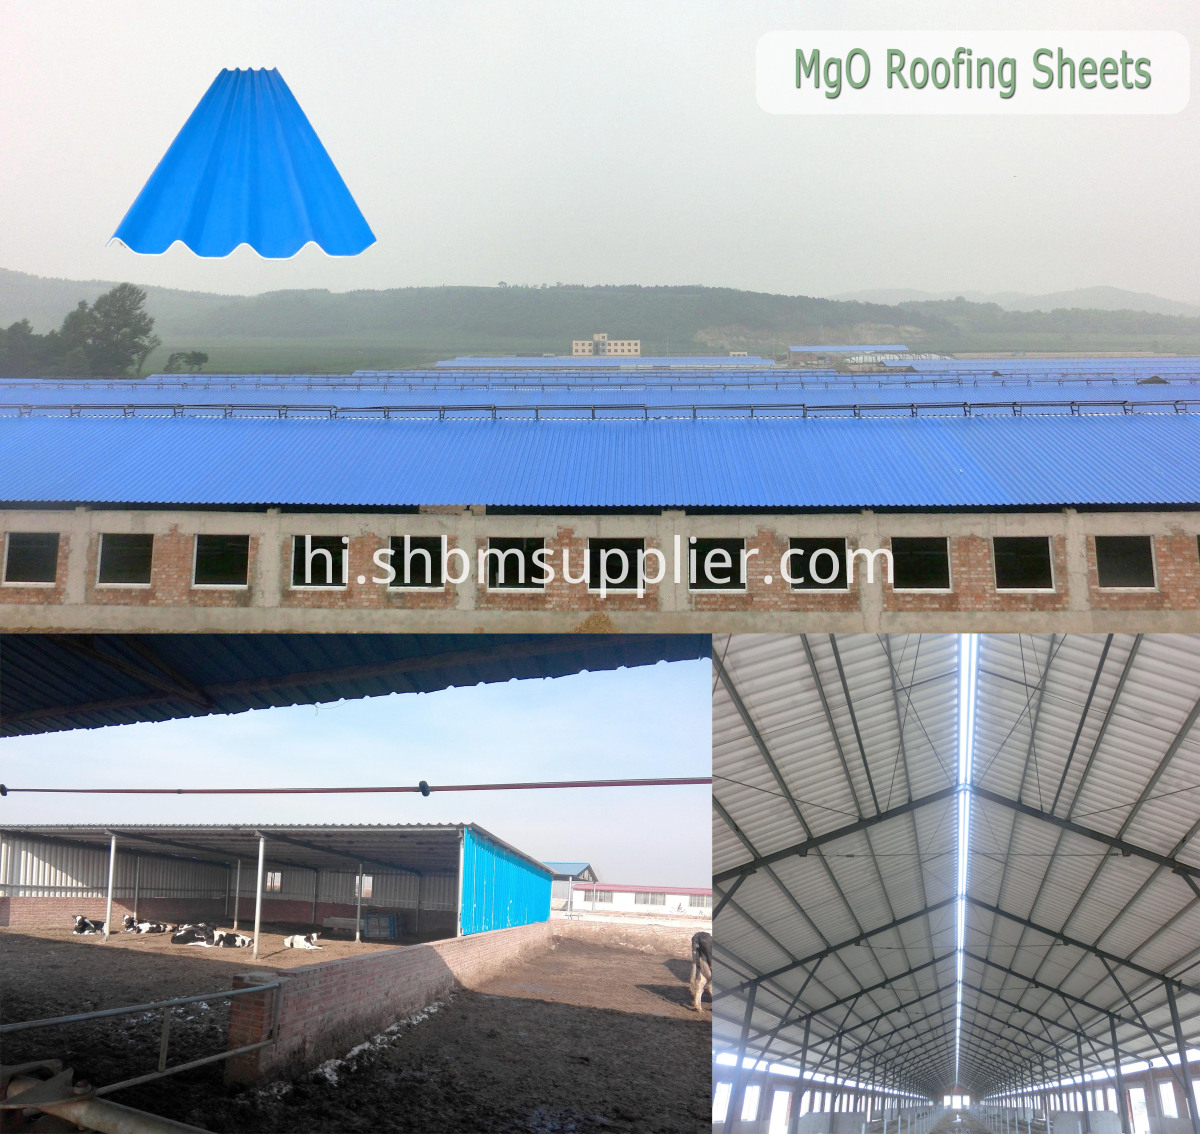 Iron-Crown Anti-corrosion Fireproof MgO Roof Sheets